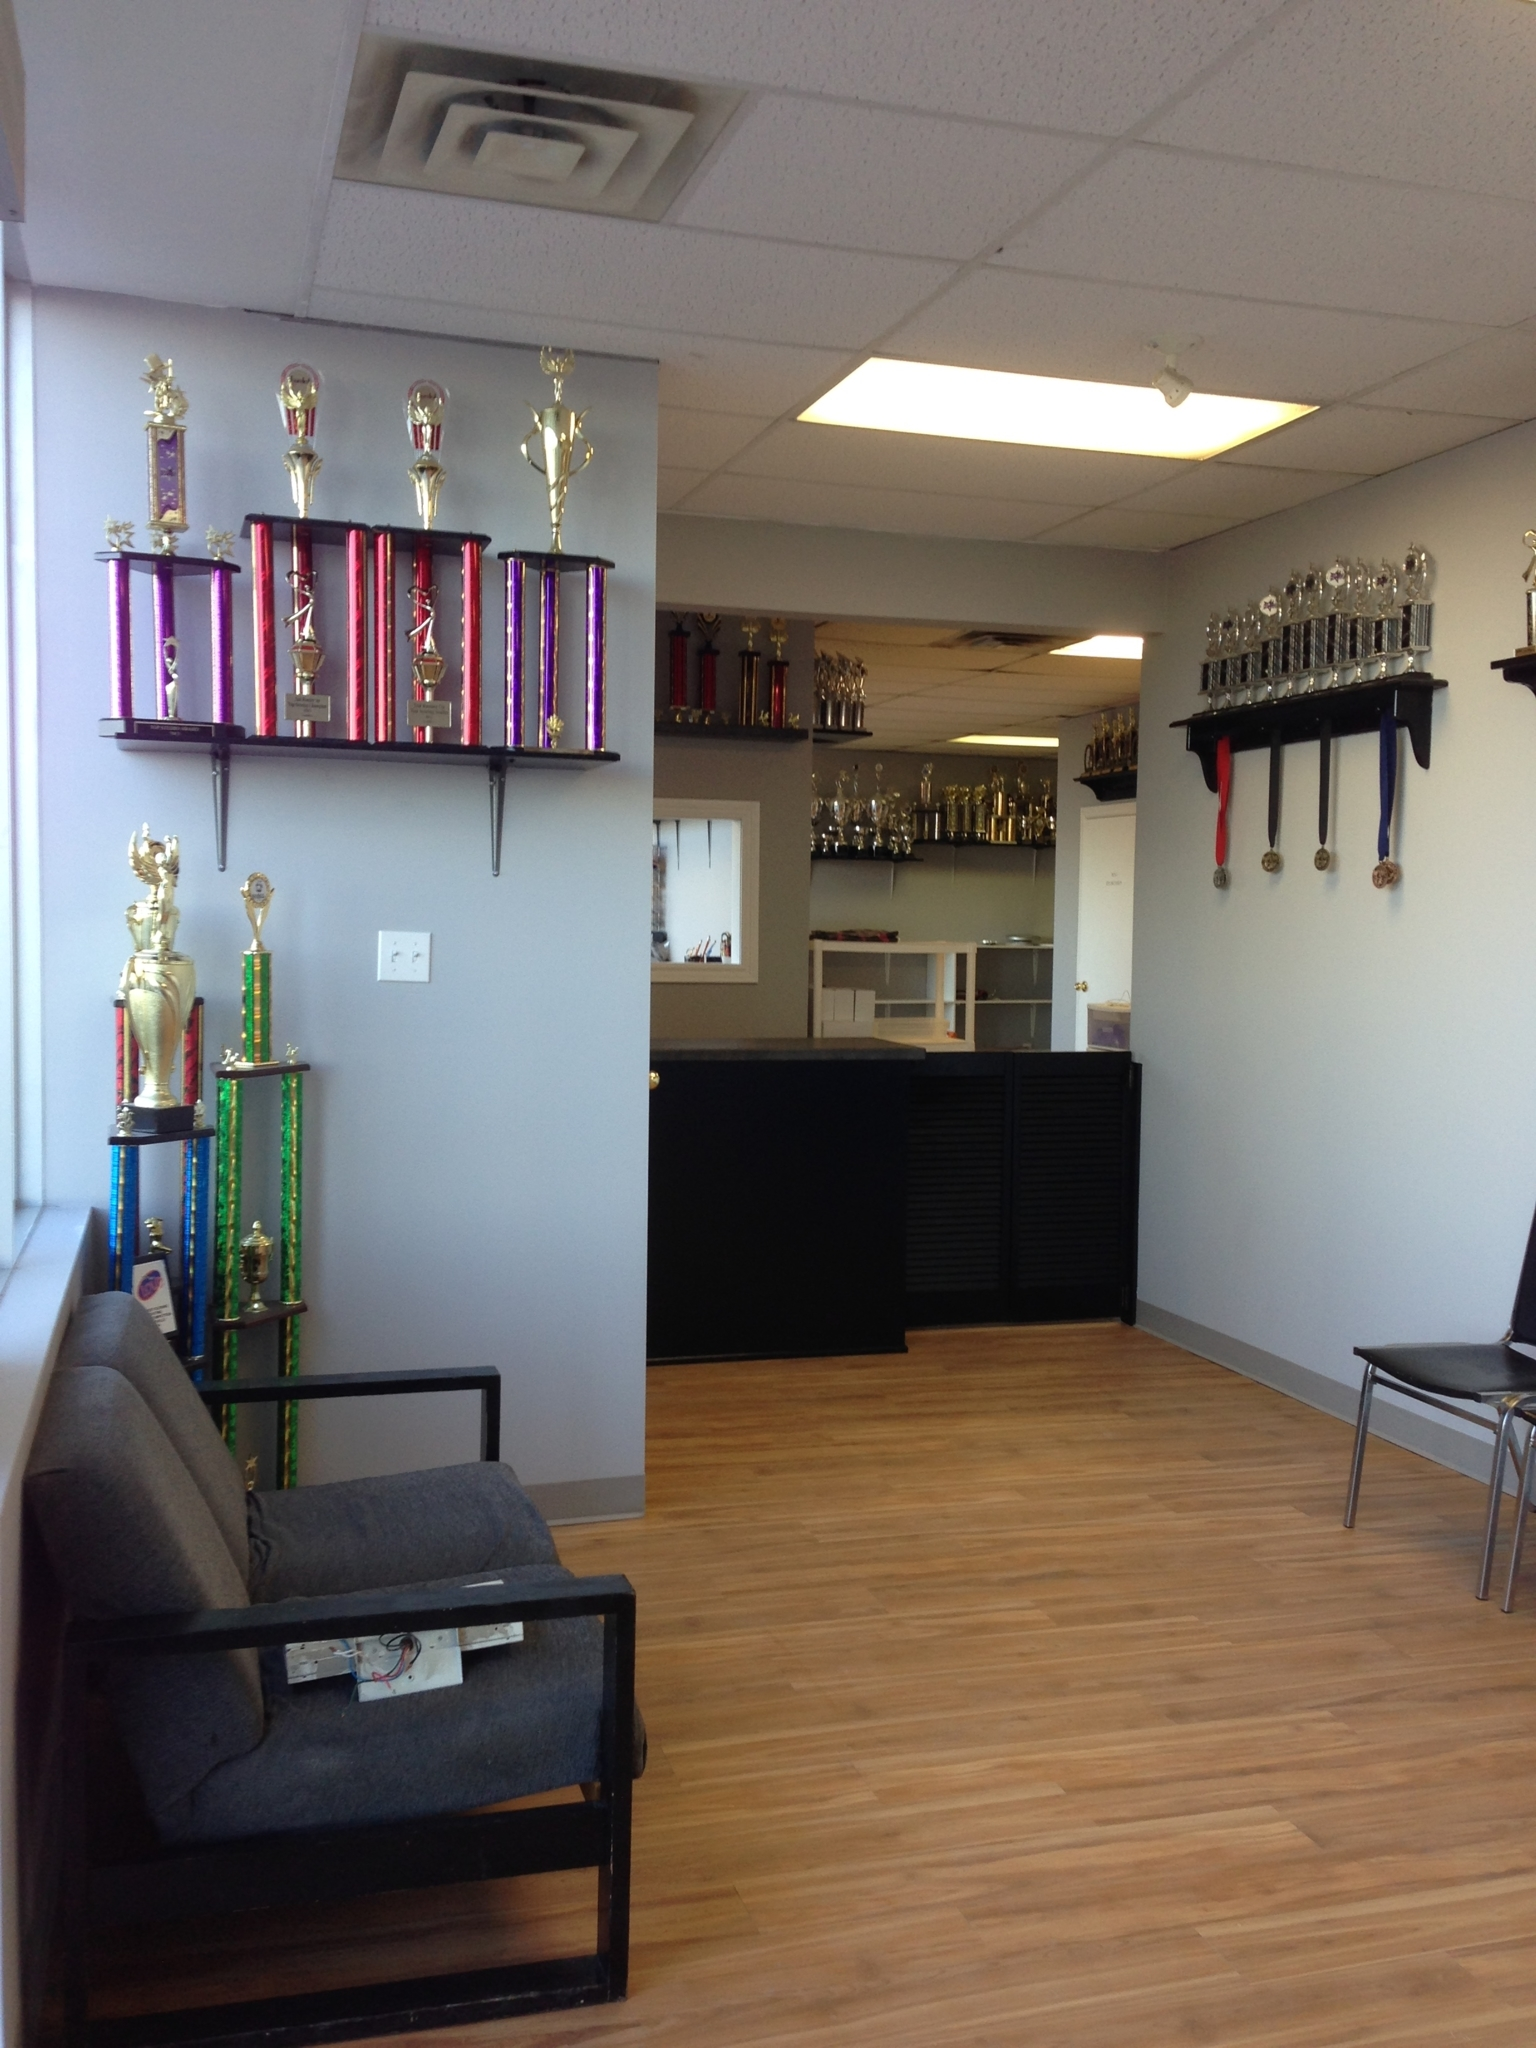 TK Danceworx in Kingston: Newly renovated, same location 1365 Midland Ave Suite 140